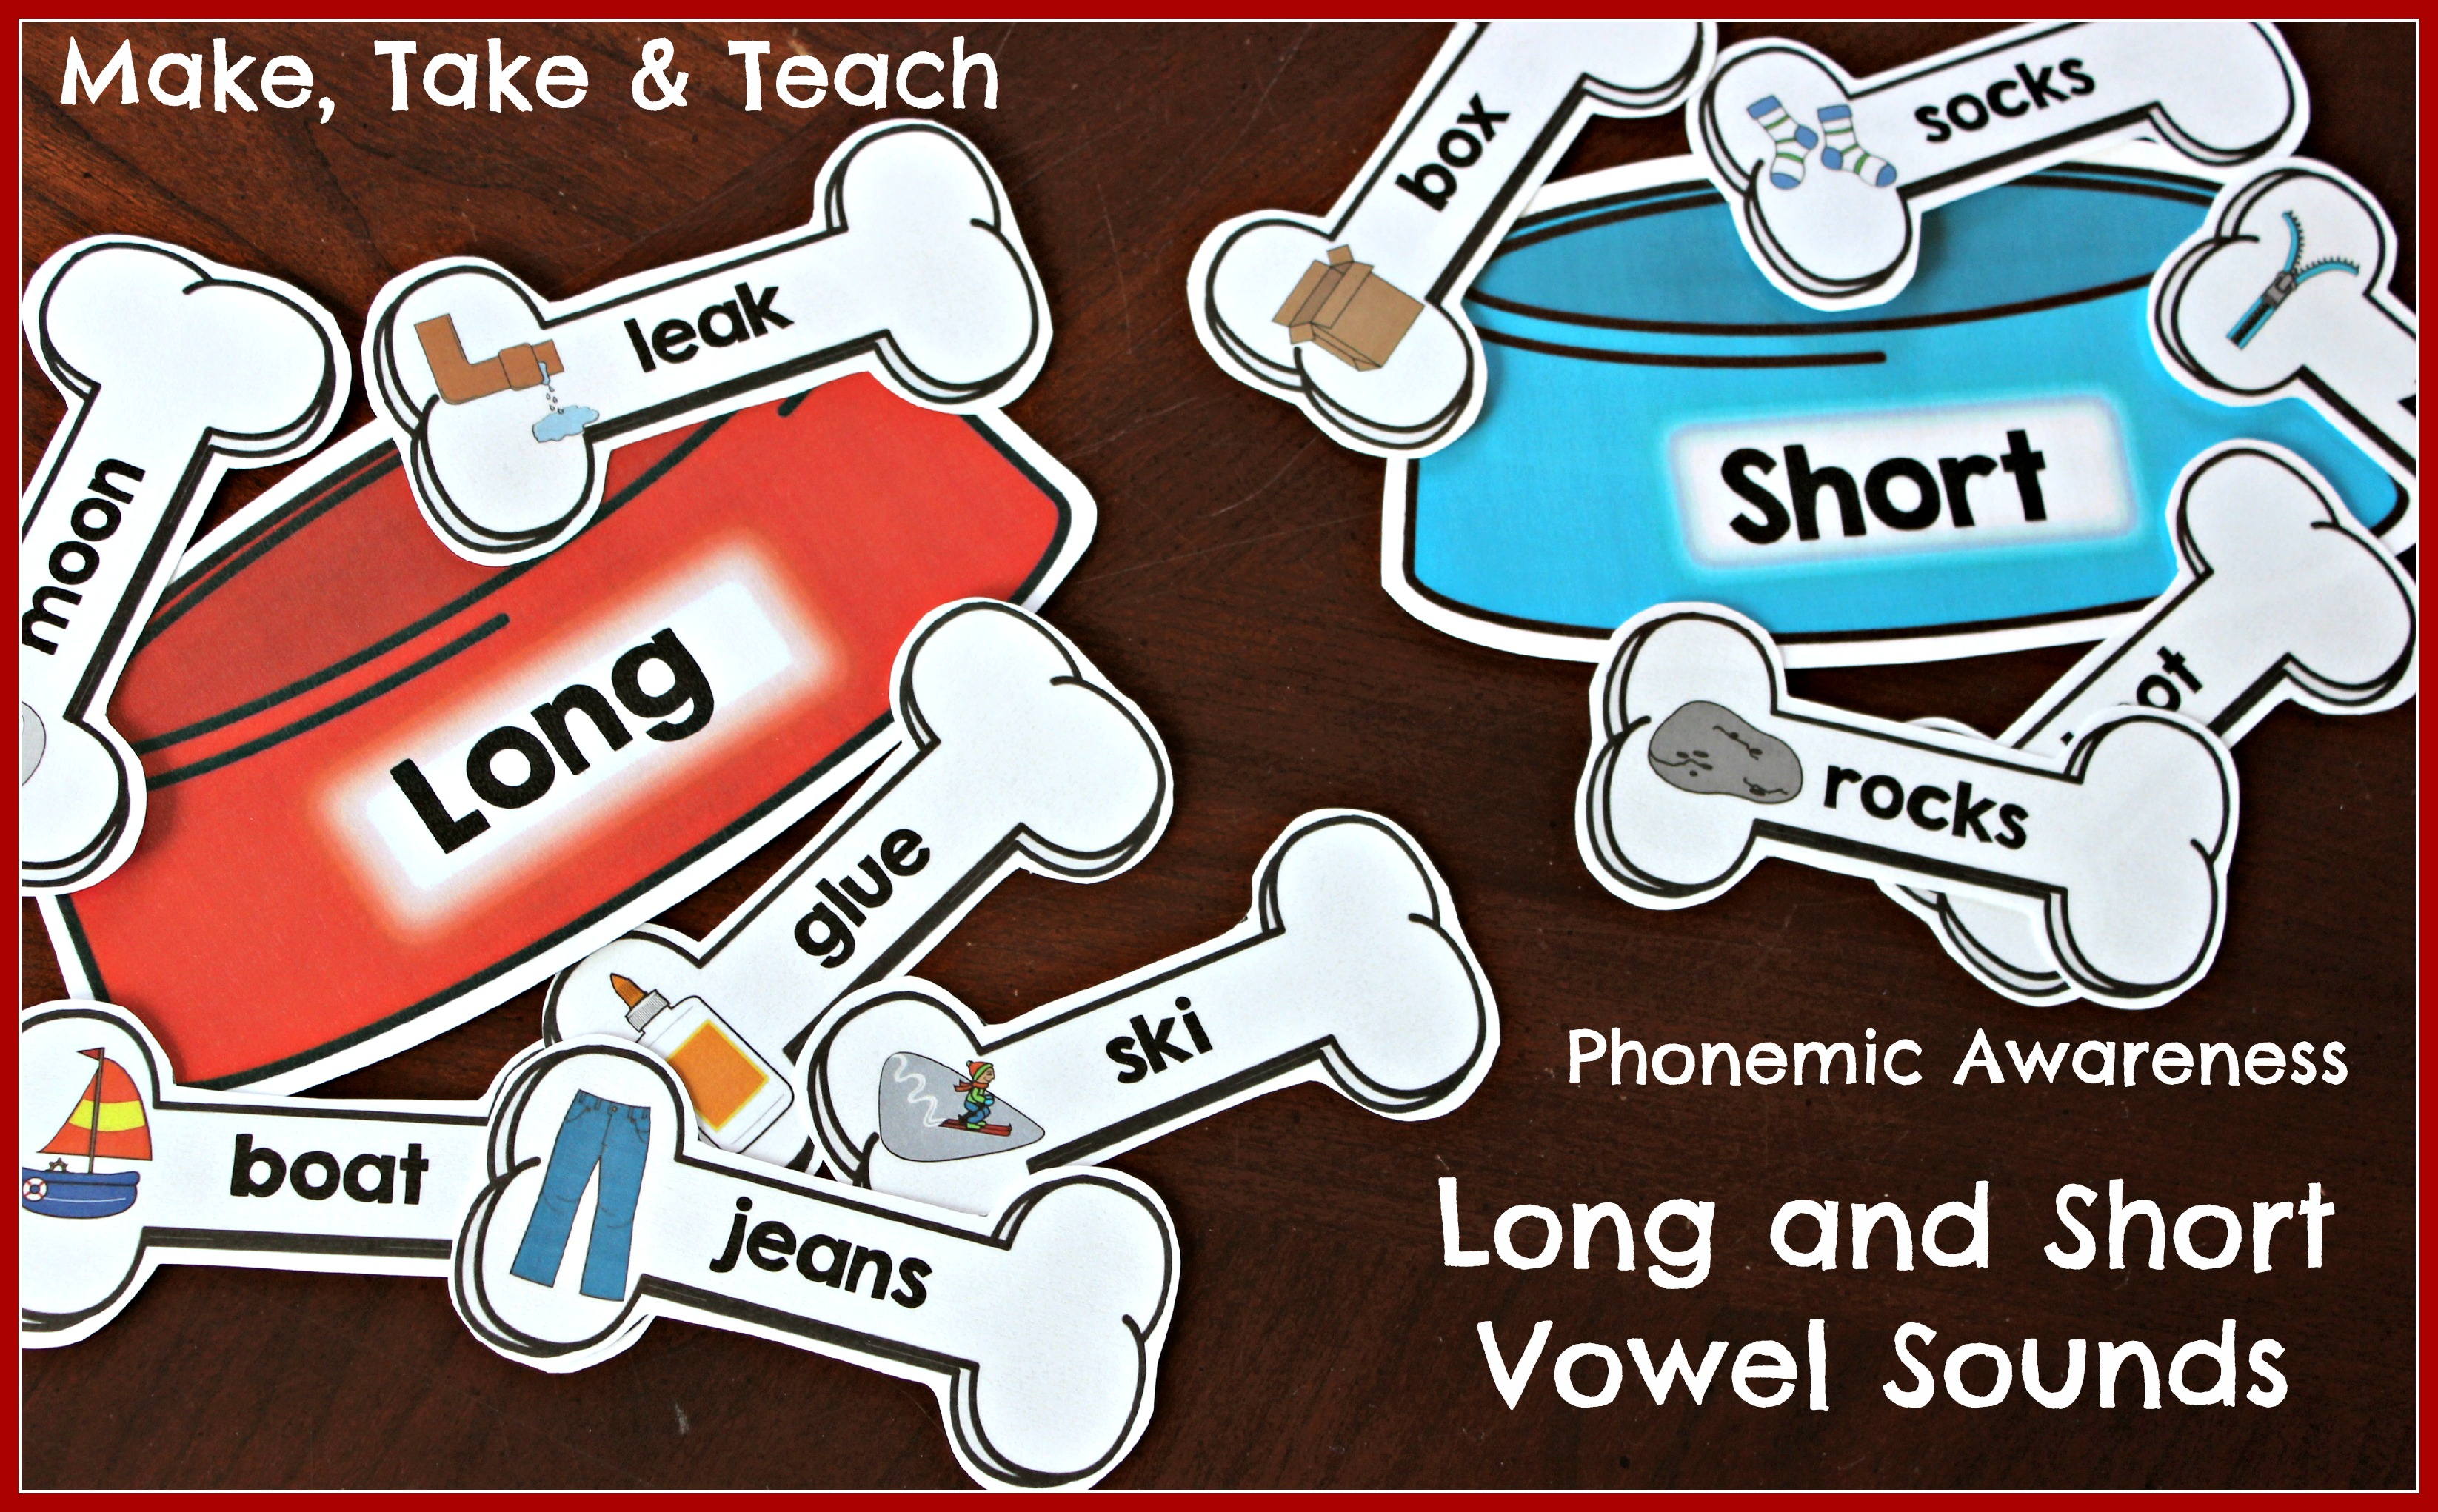 Teaching Long And Short Vowel Sounds